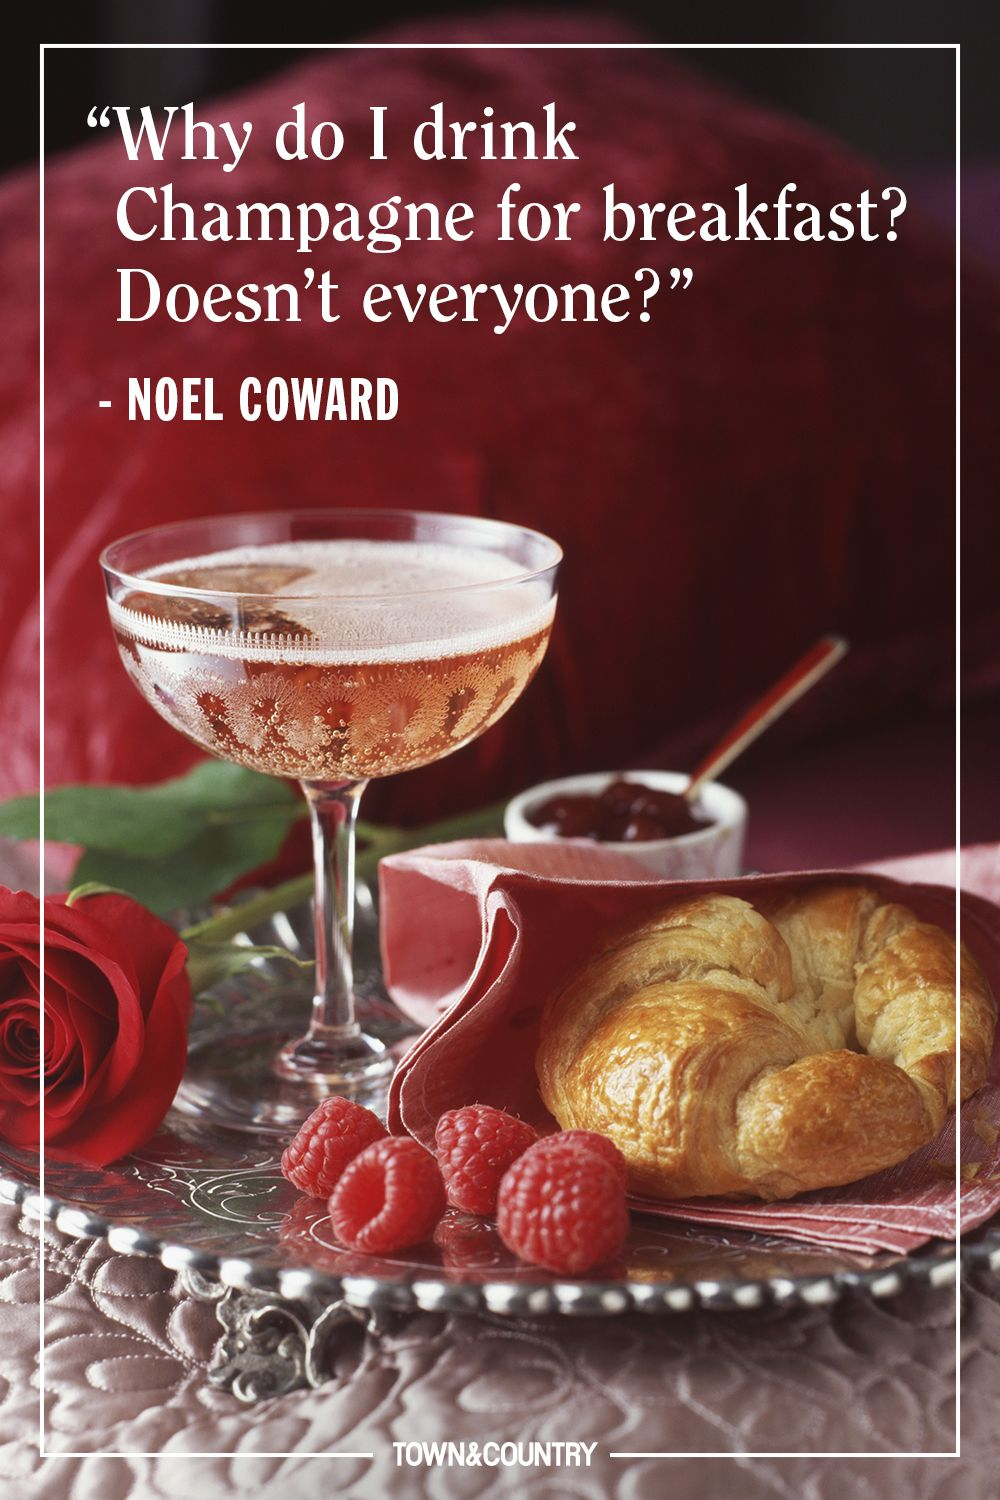 10 Best Champagne Quotes - Famous Sayings About Champagne